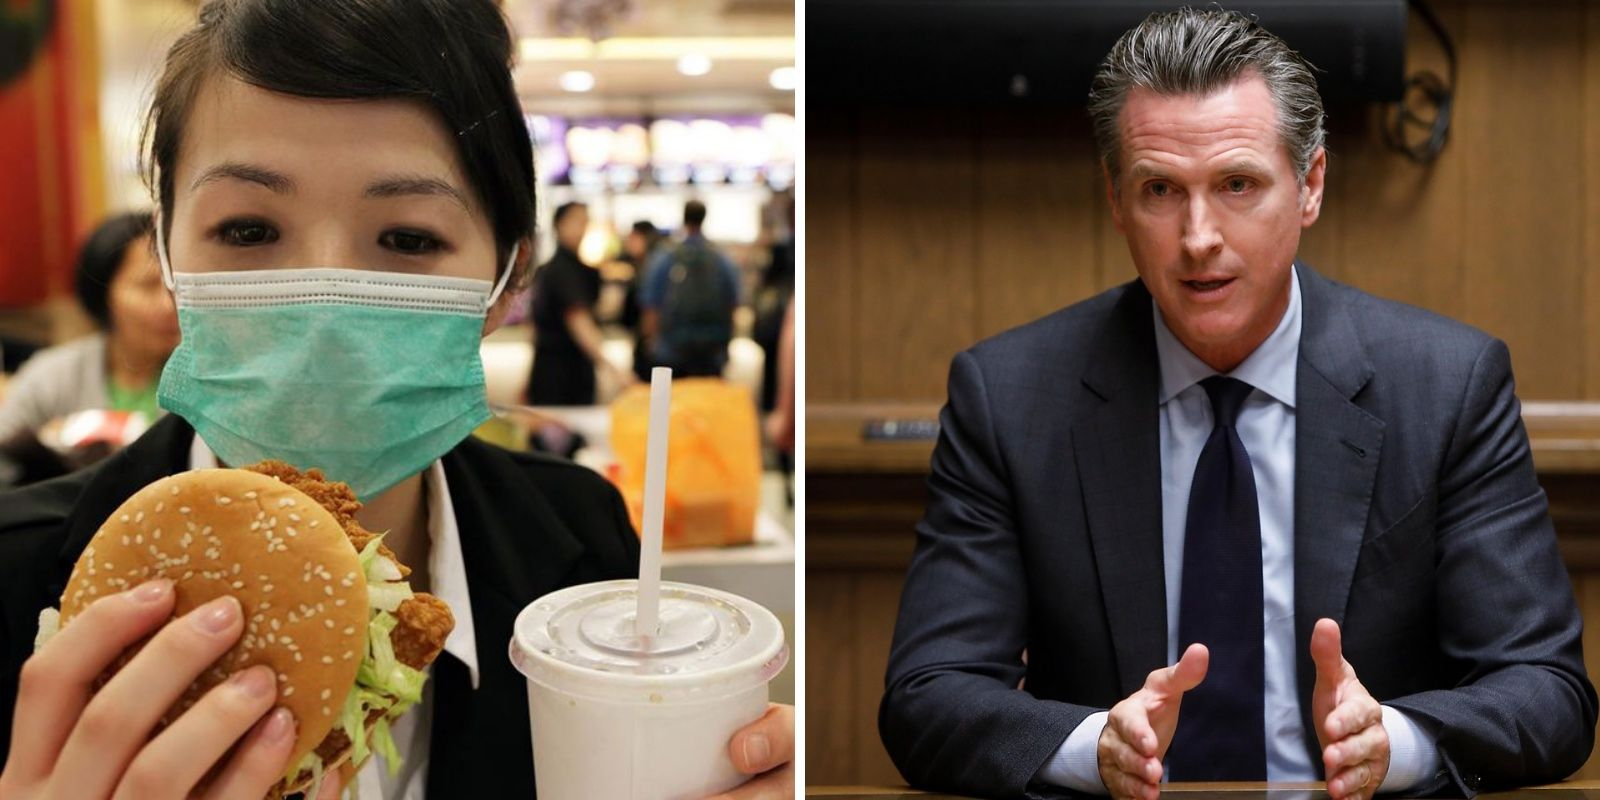 California says to put your mask on between bites—and to minimize taking off your mask while dining